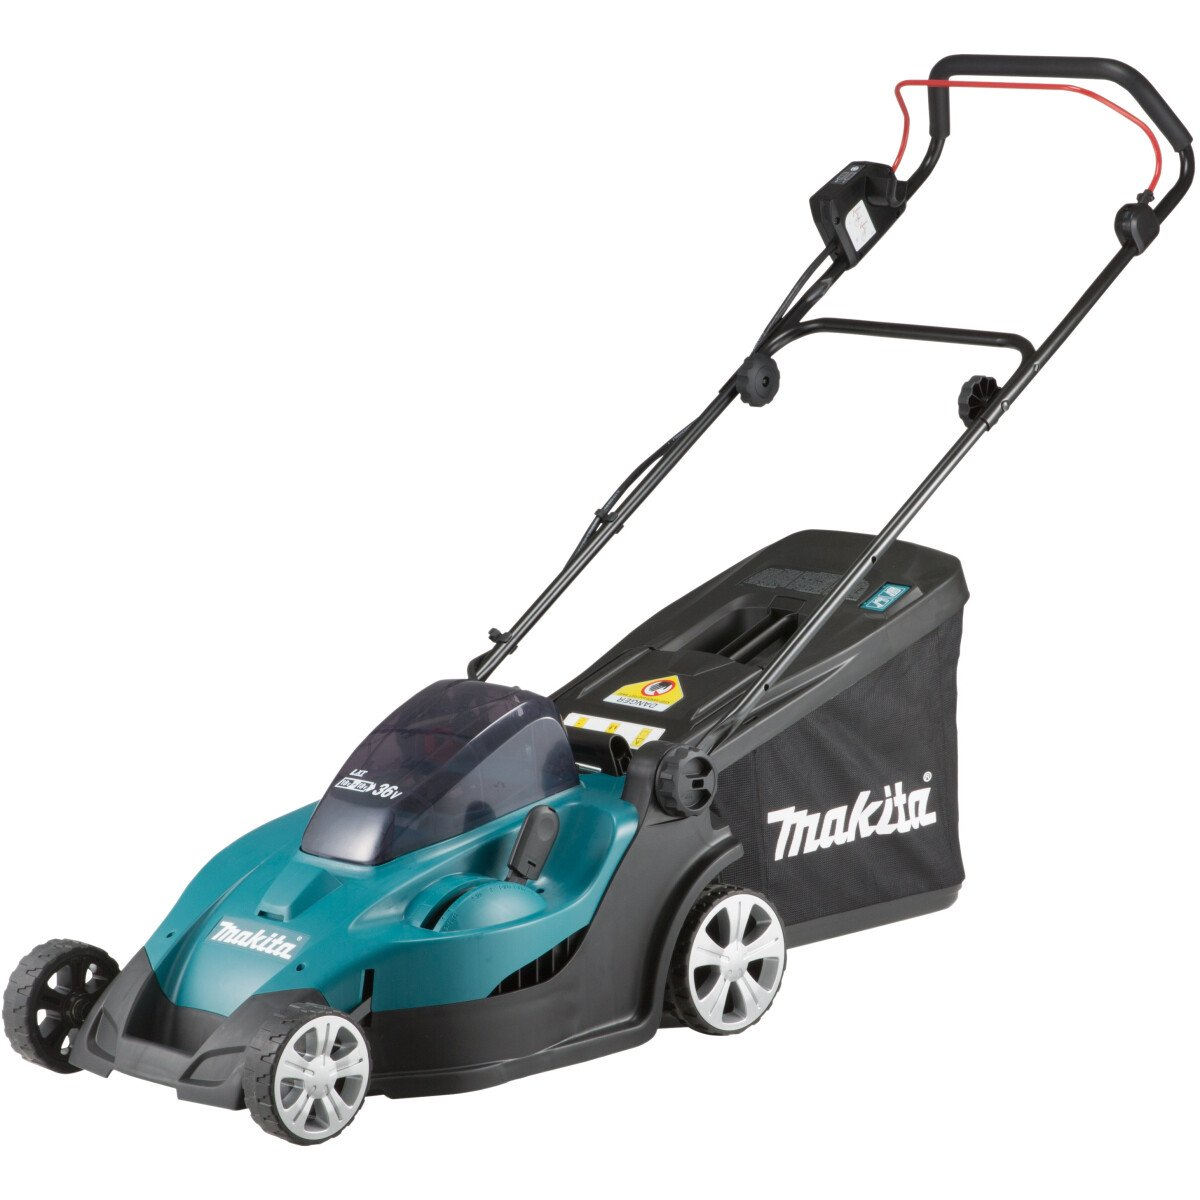 Makita DLM431PG2 Twin 18V Lawn Mower 43cm with 2 x 6.0Ah Batteries